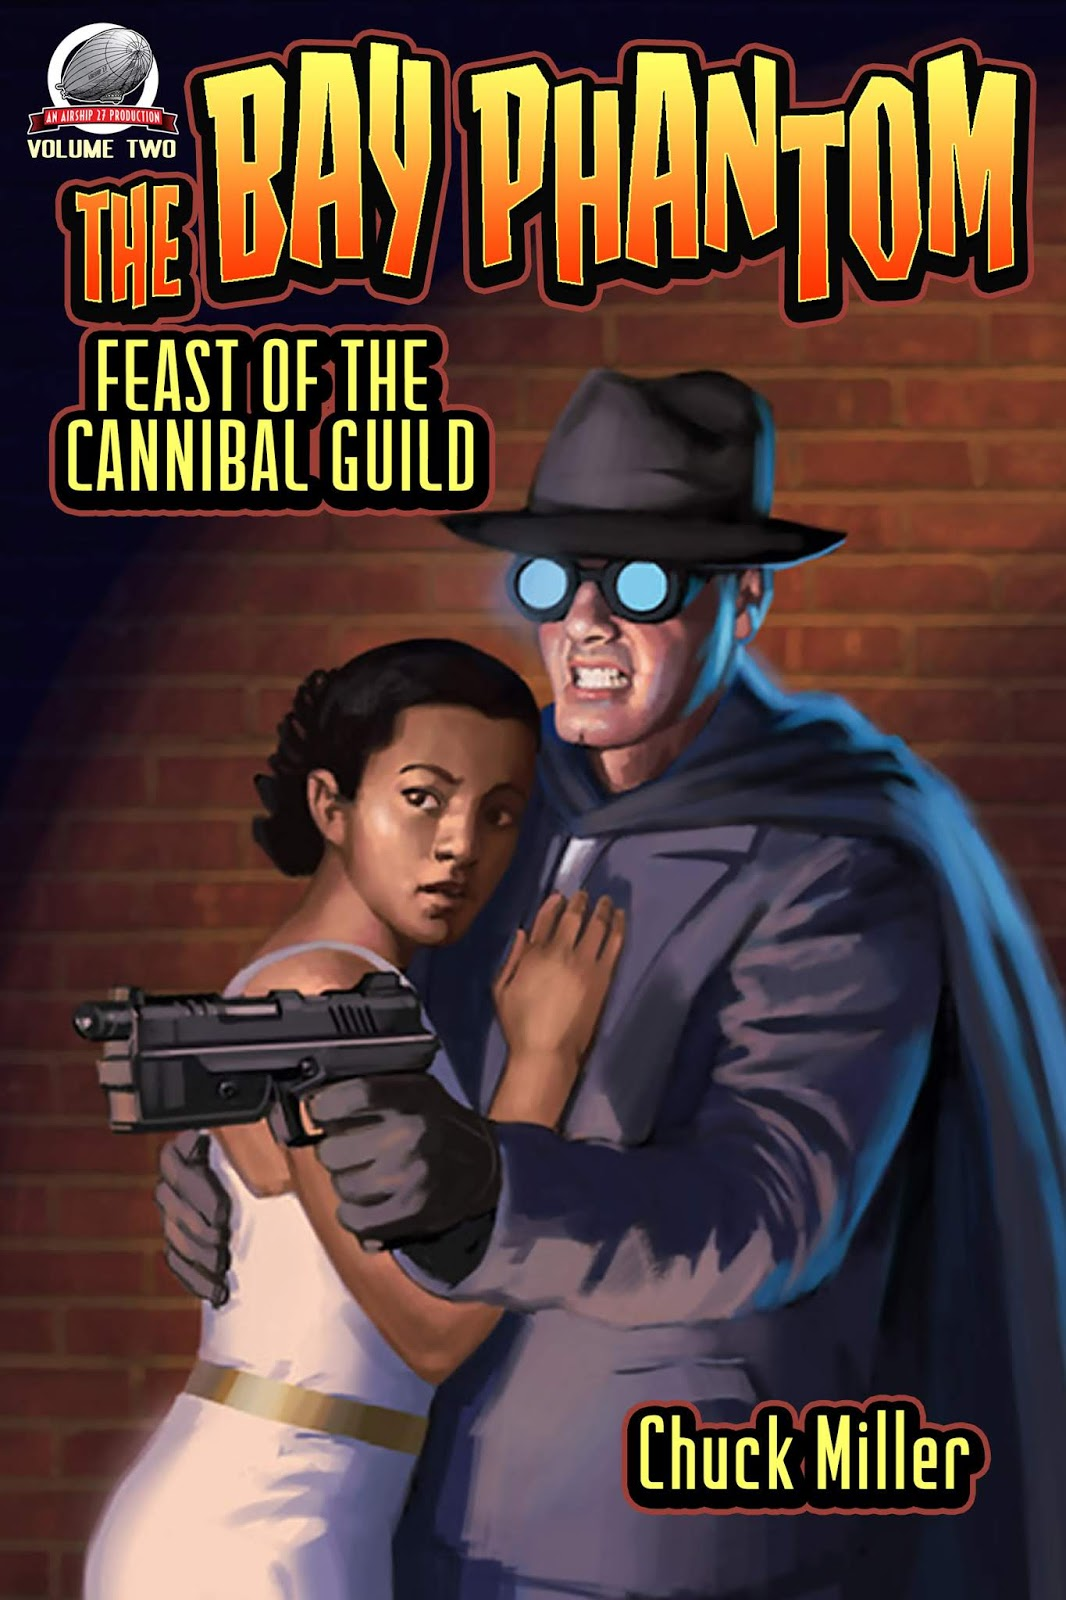 Airship 27 Productions, a leader in the New Pulp publishing community, is  excited to present the second book in writer Chuck Miller's series; ...